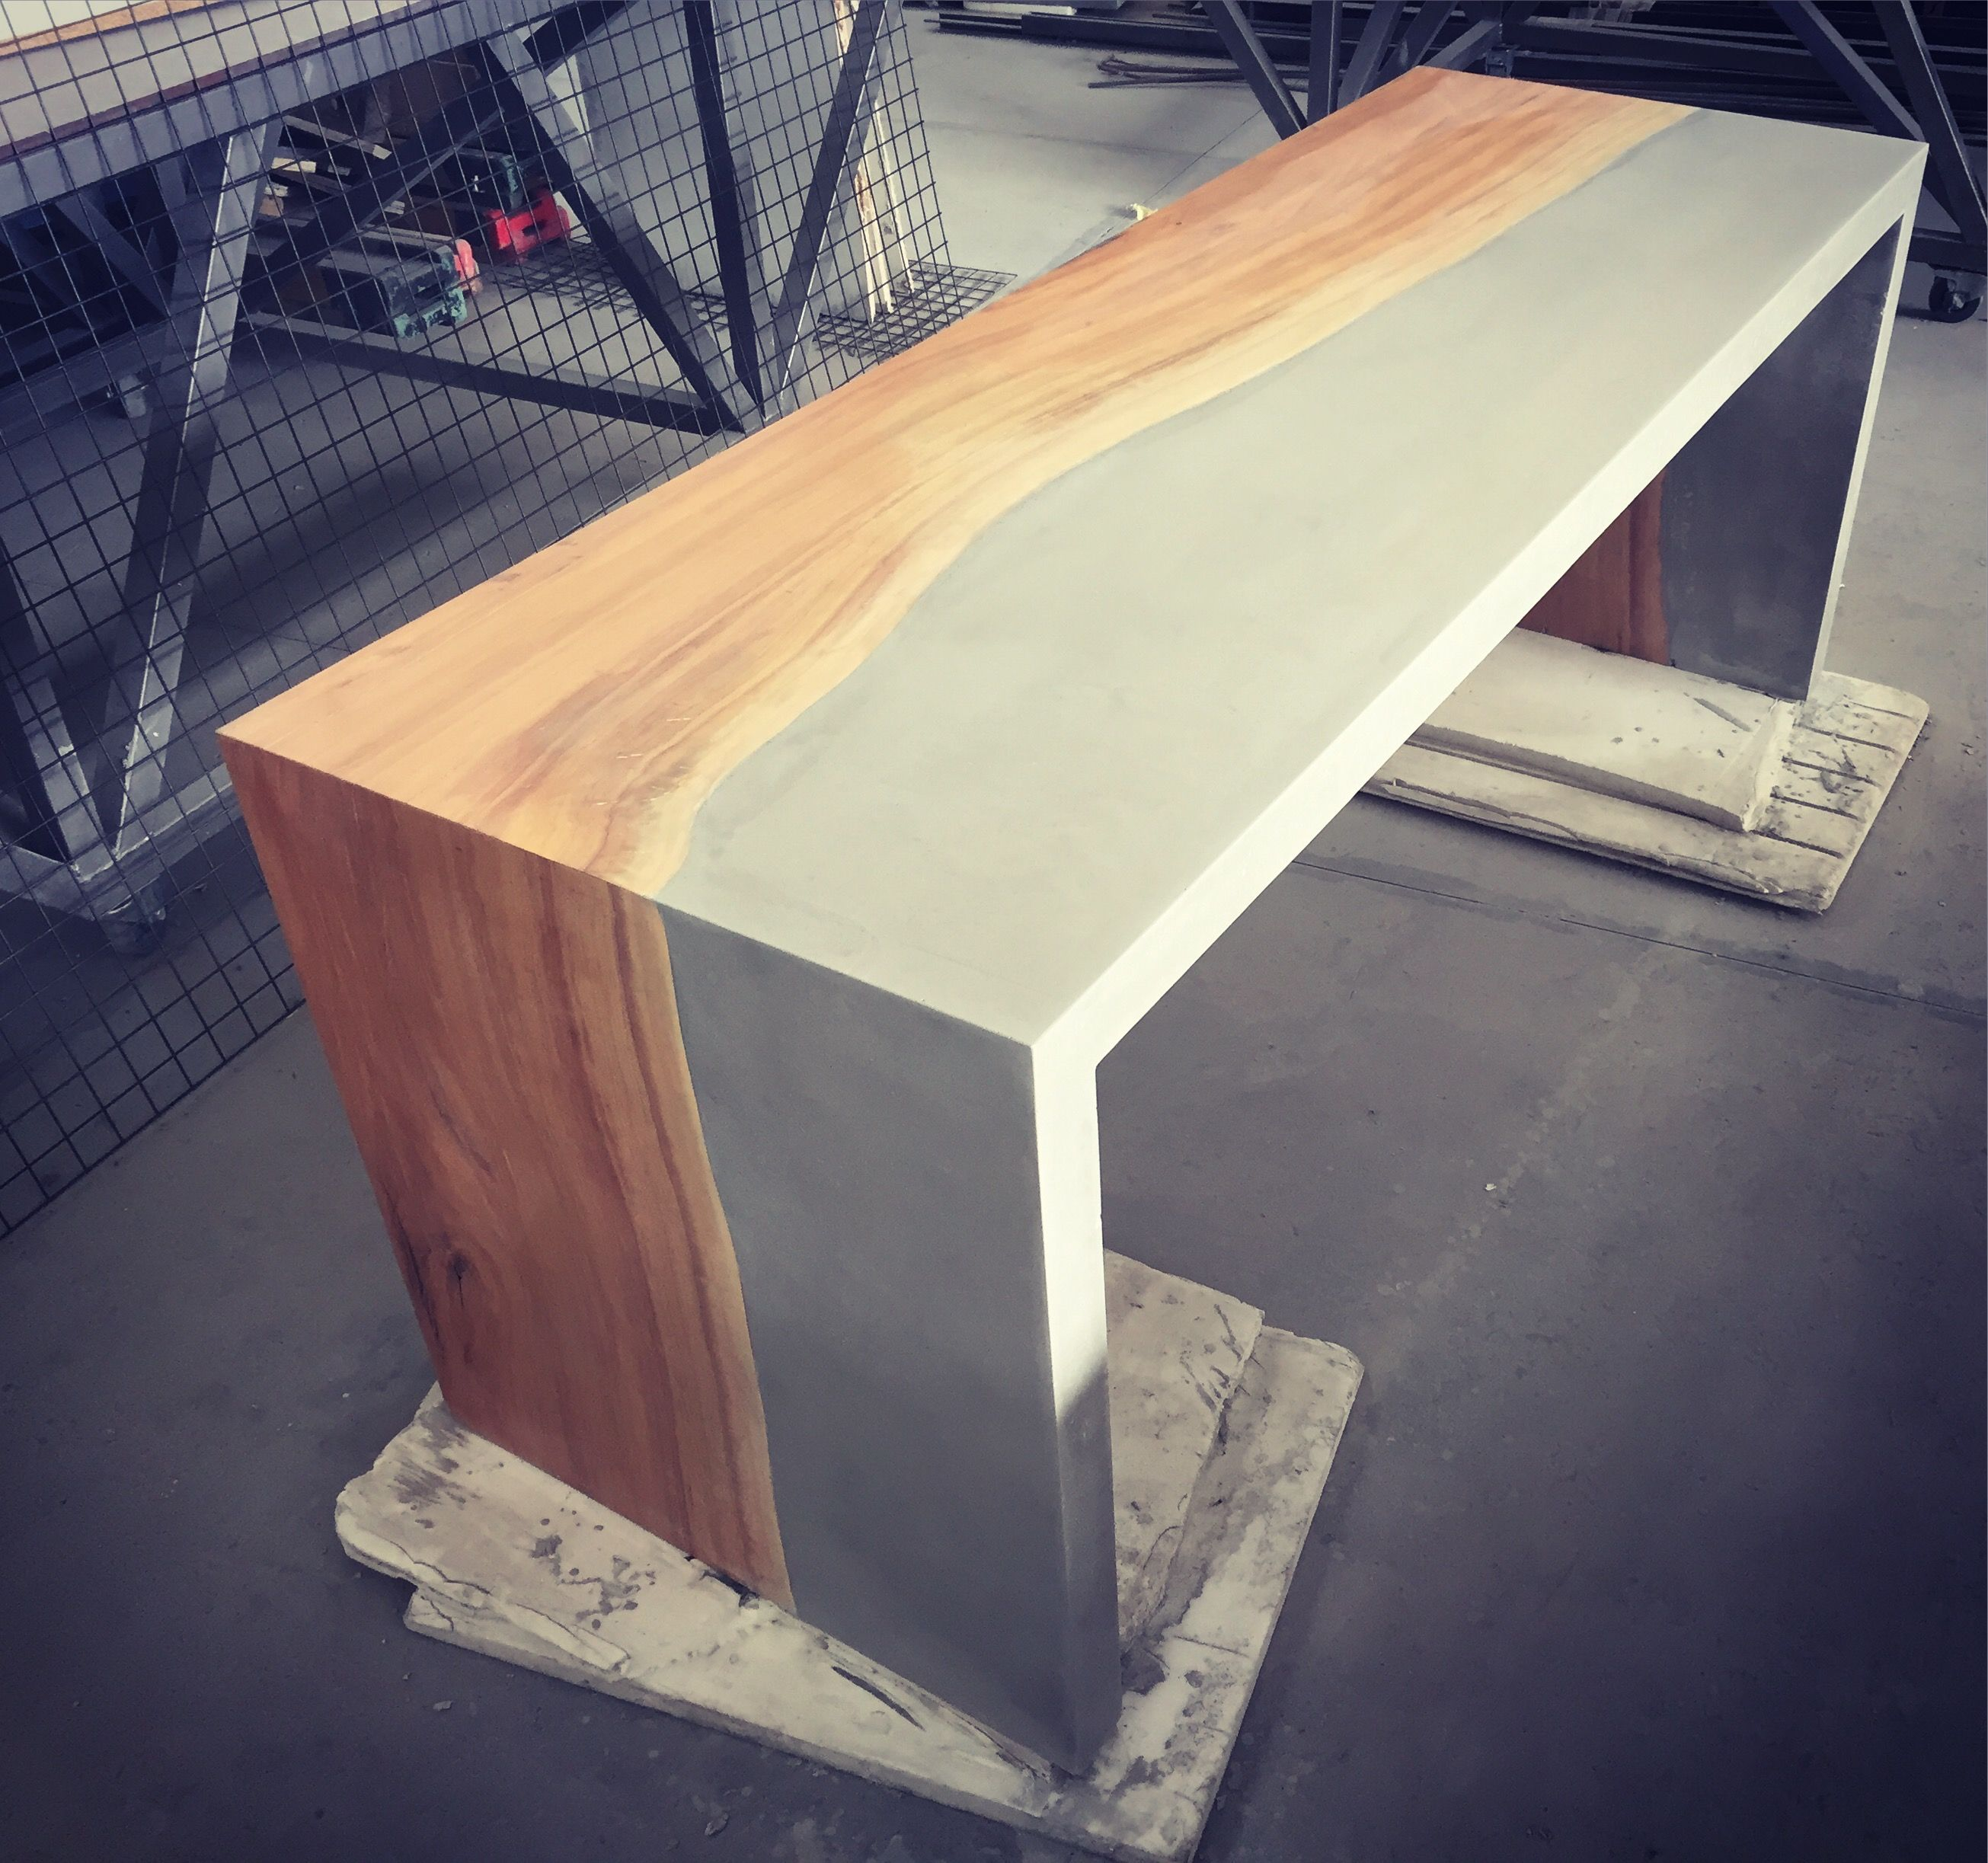 polished concrete furniture. Polished Concrete And Matumi Wood Counter By FLOAT Design Furniture N